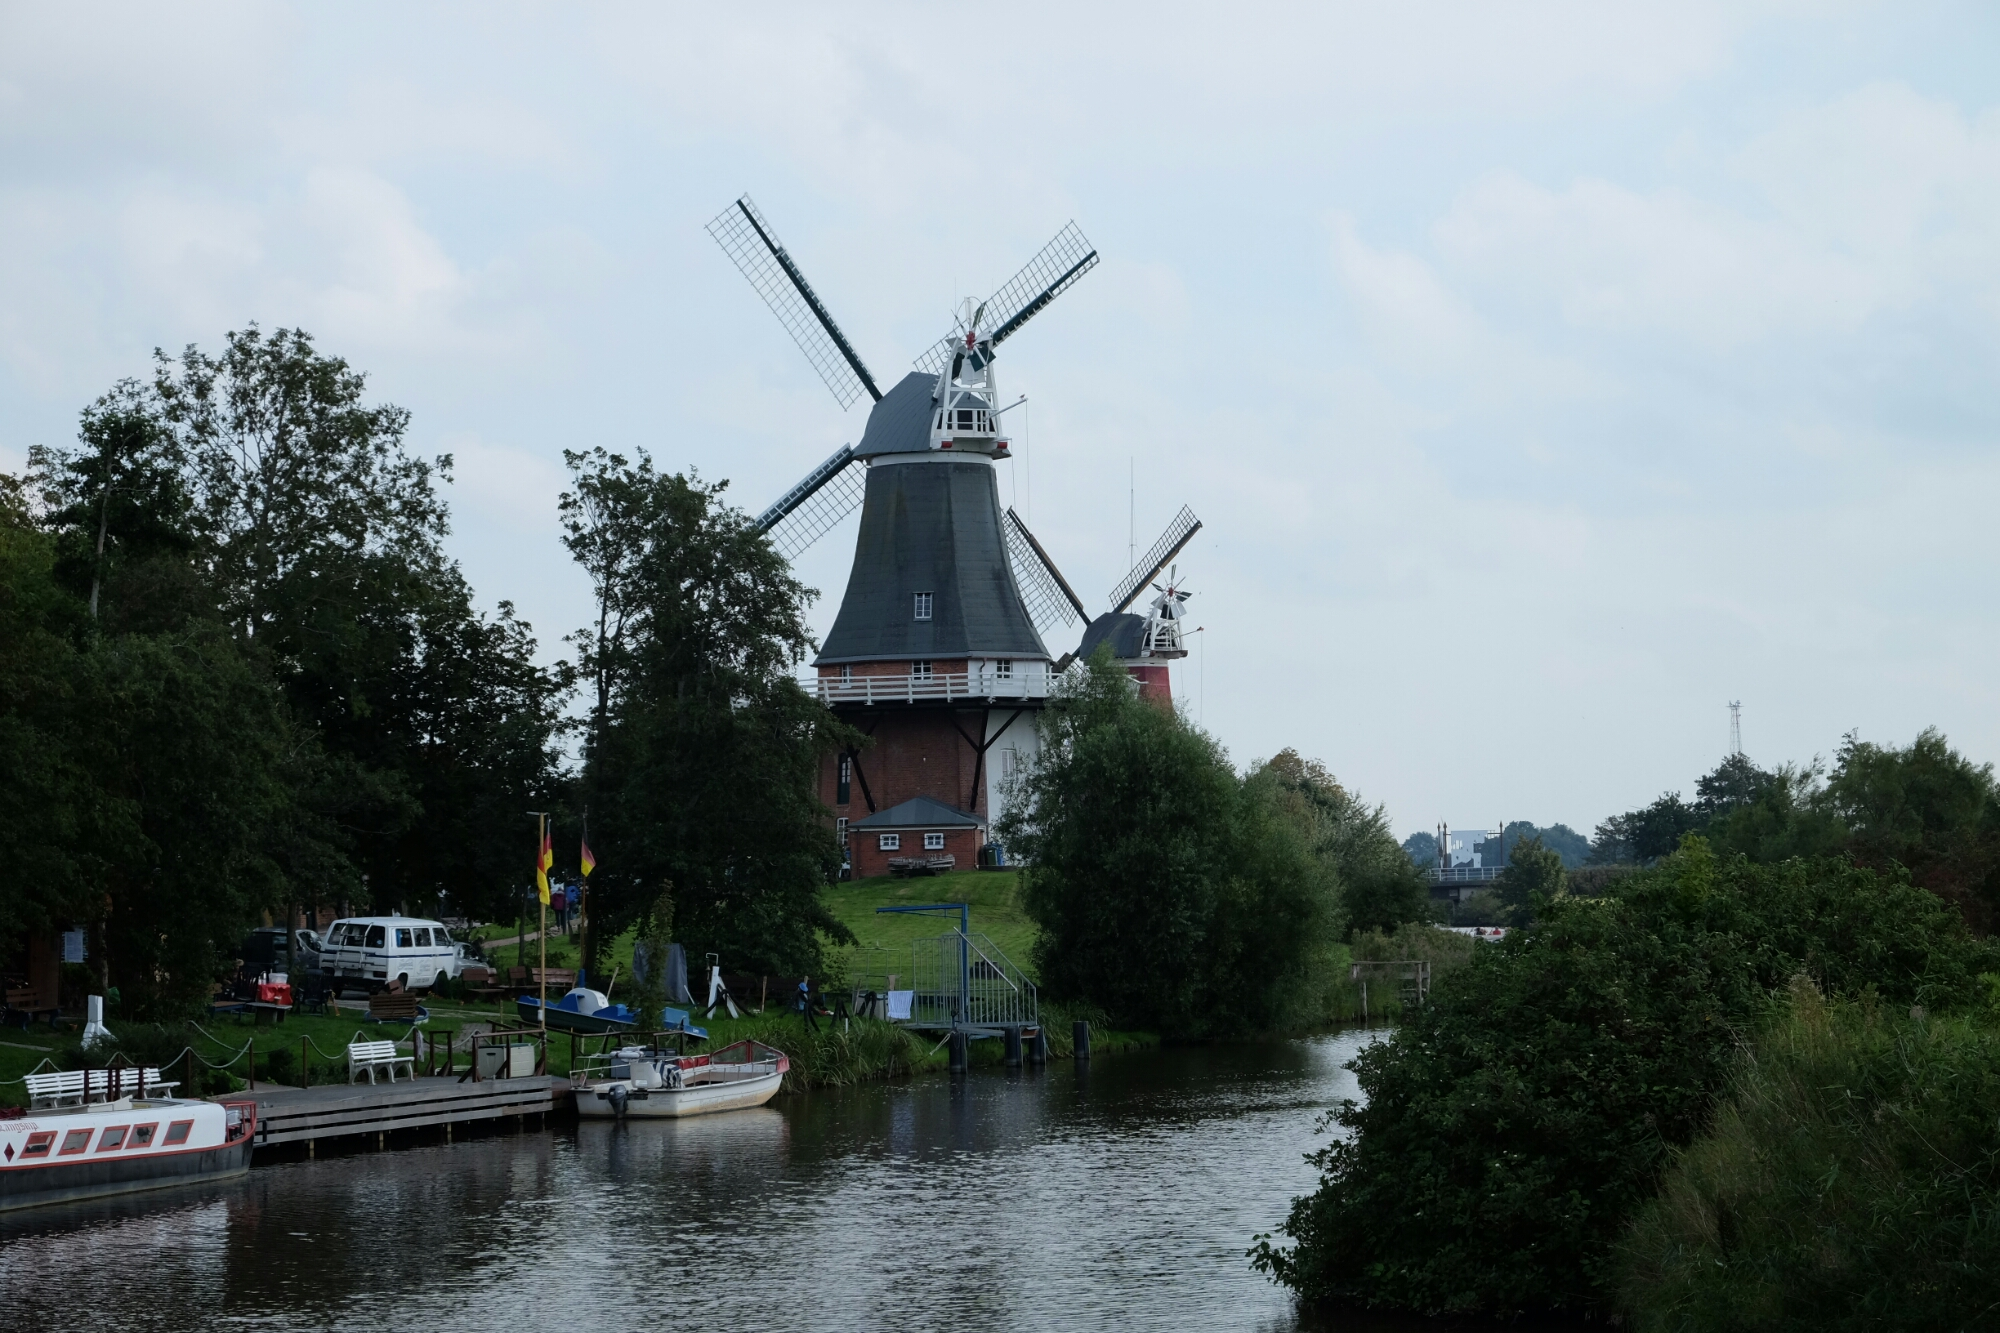 Windmühlen in Greetsiel (Gallerieholländer)